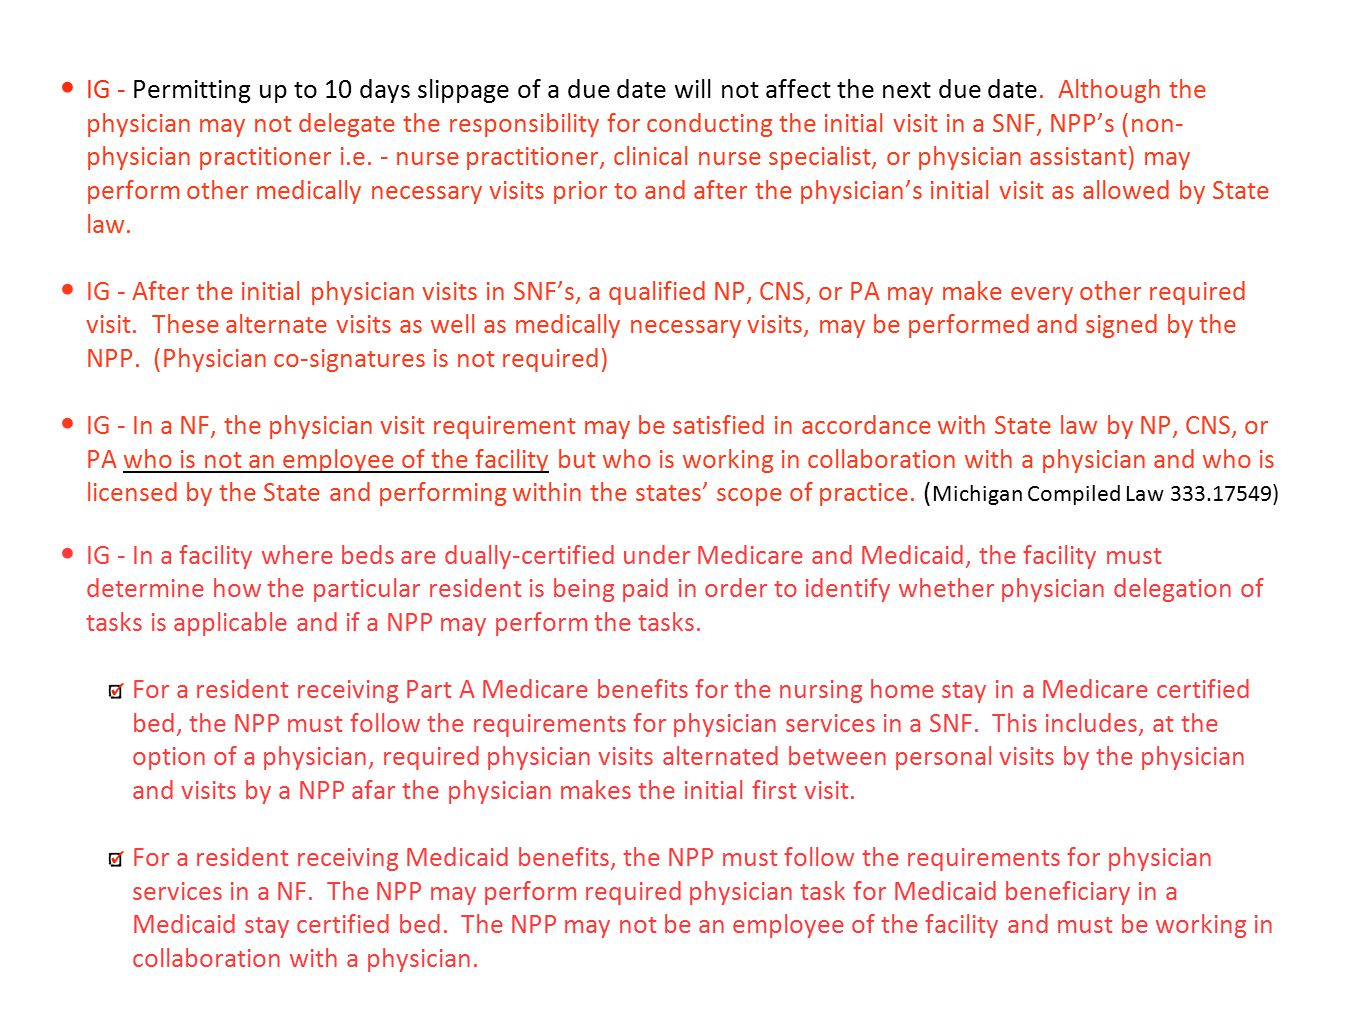 IG - Permitting up to 10 days slippage of a due date will not affect the next due date. Although the physician may not delegate the responsibility for conducting the initial visit in a SNF, NPP's (non-physician practitioner i.e. - nurse practitioner, clinical nurse specialist, or physician assistant) may perform other medically necessary visits prior to and after the physician's initial visit as allowed by State law.